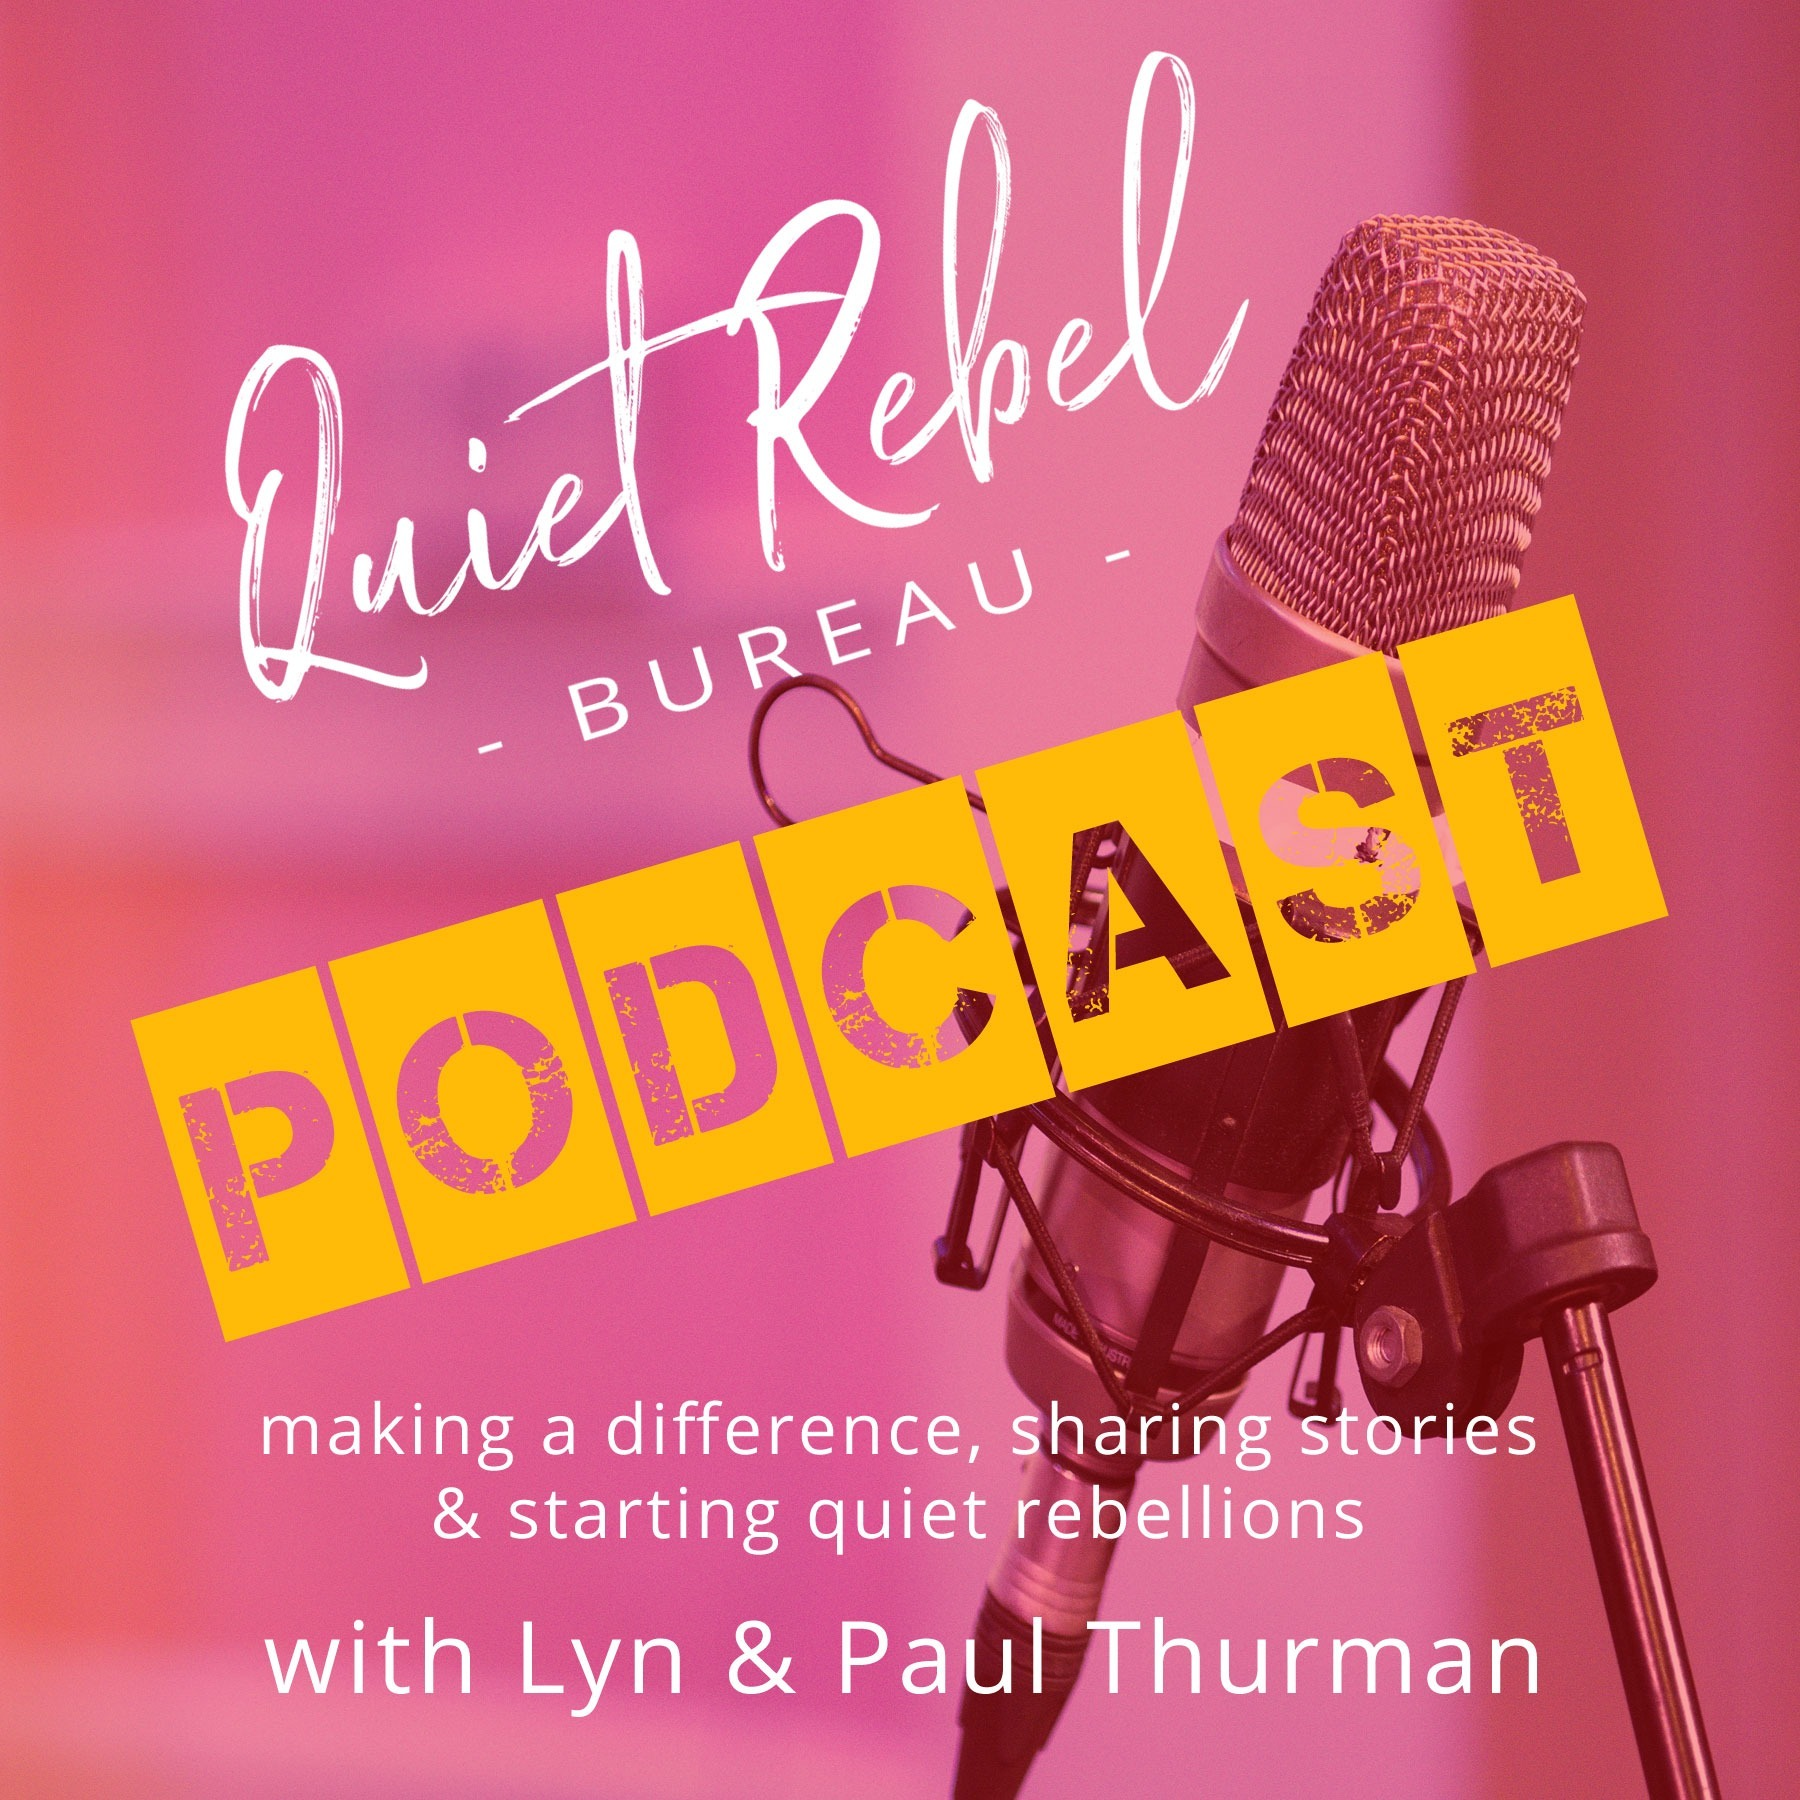 Quiet Rebel Bureau Interview With Lyn and Paul Thurman